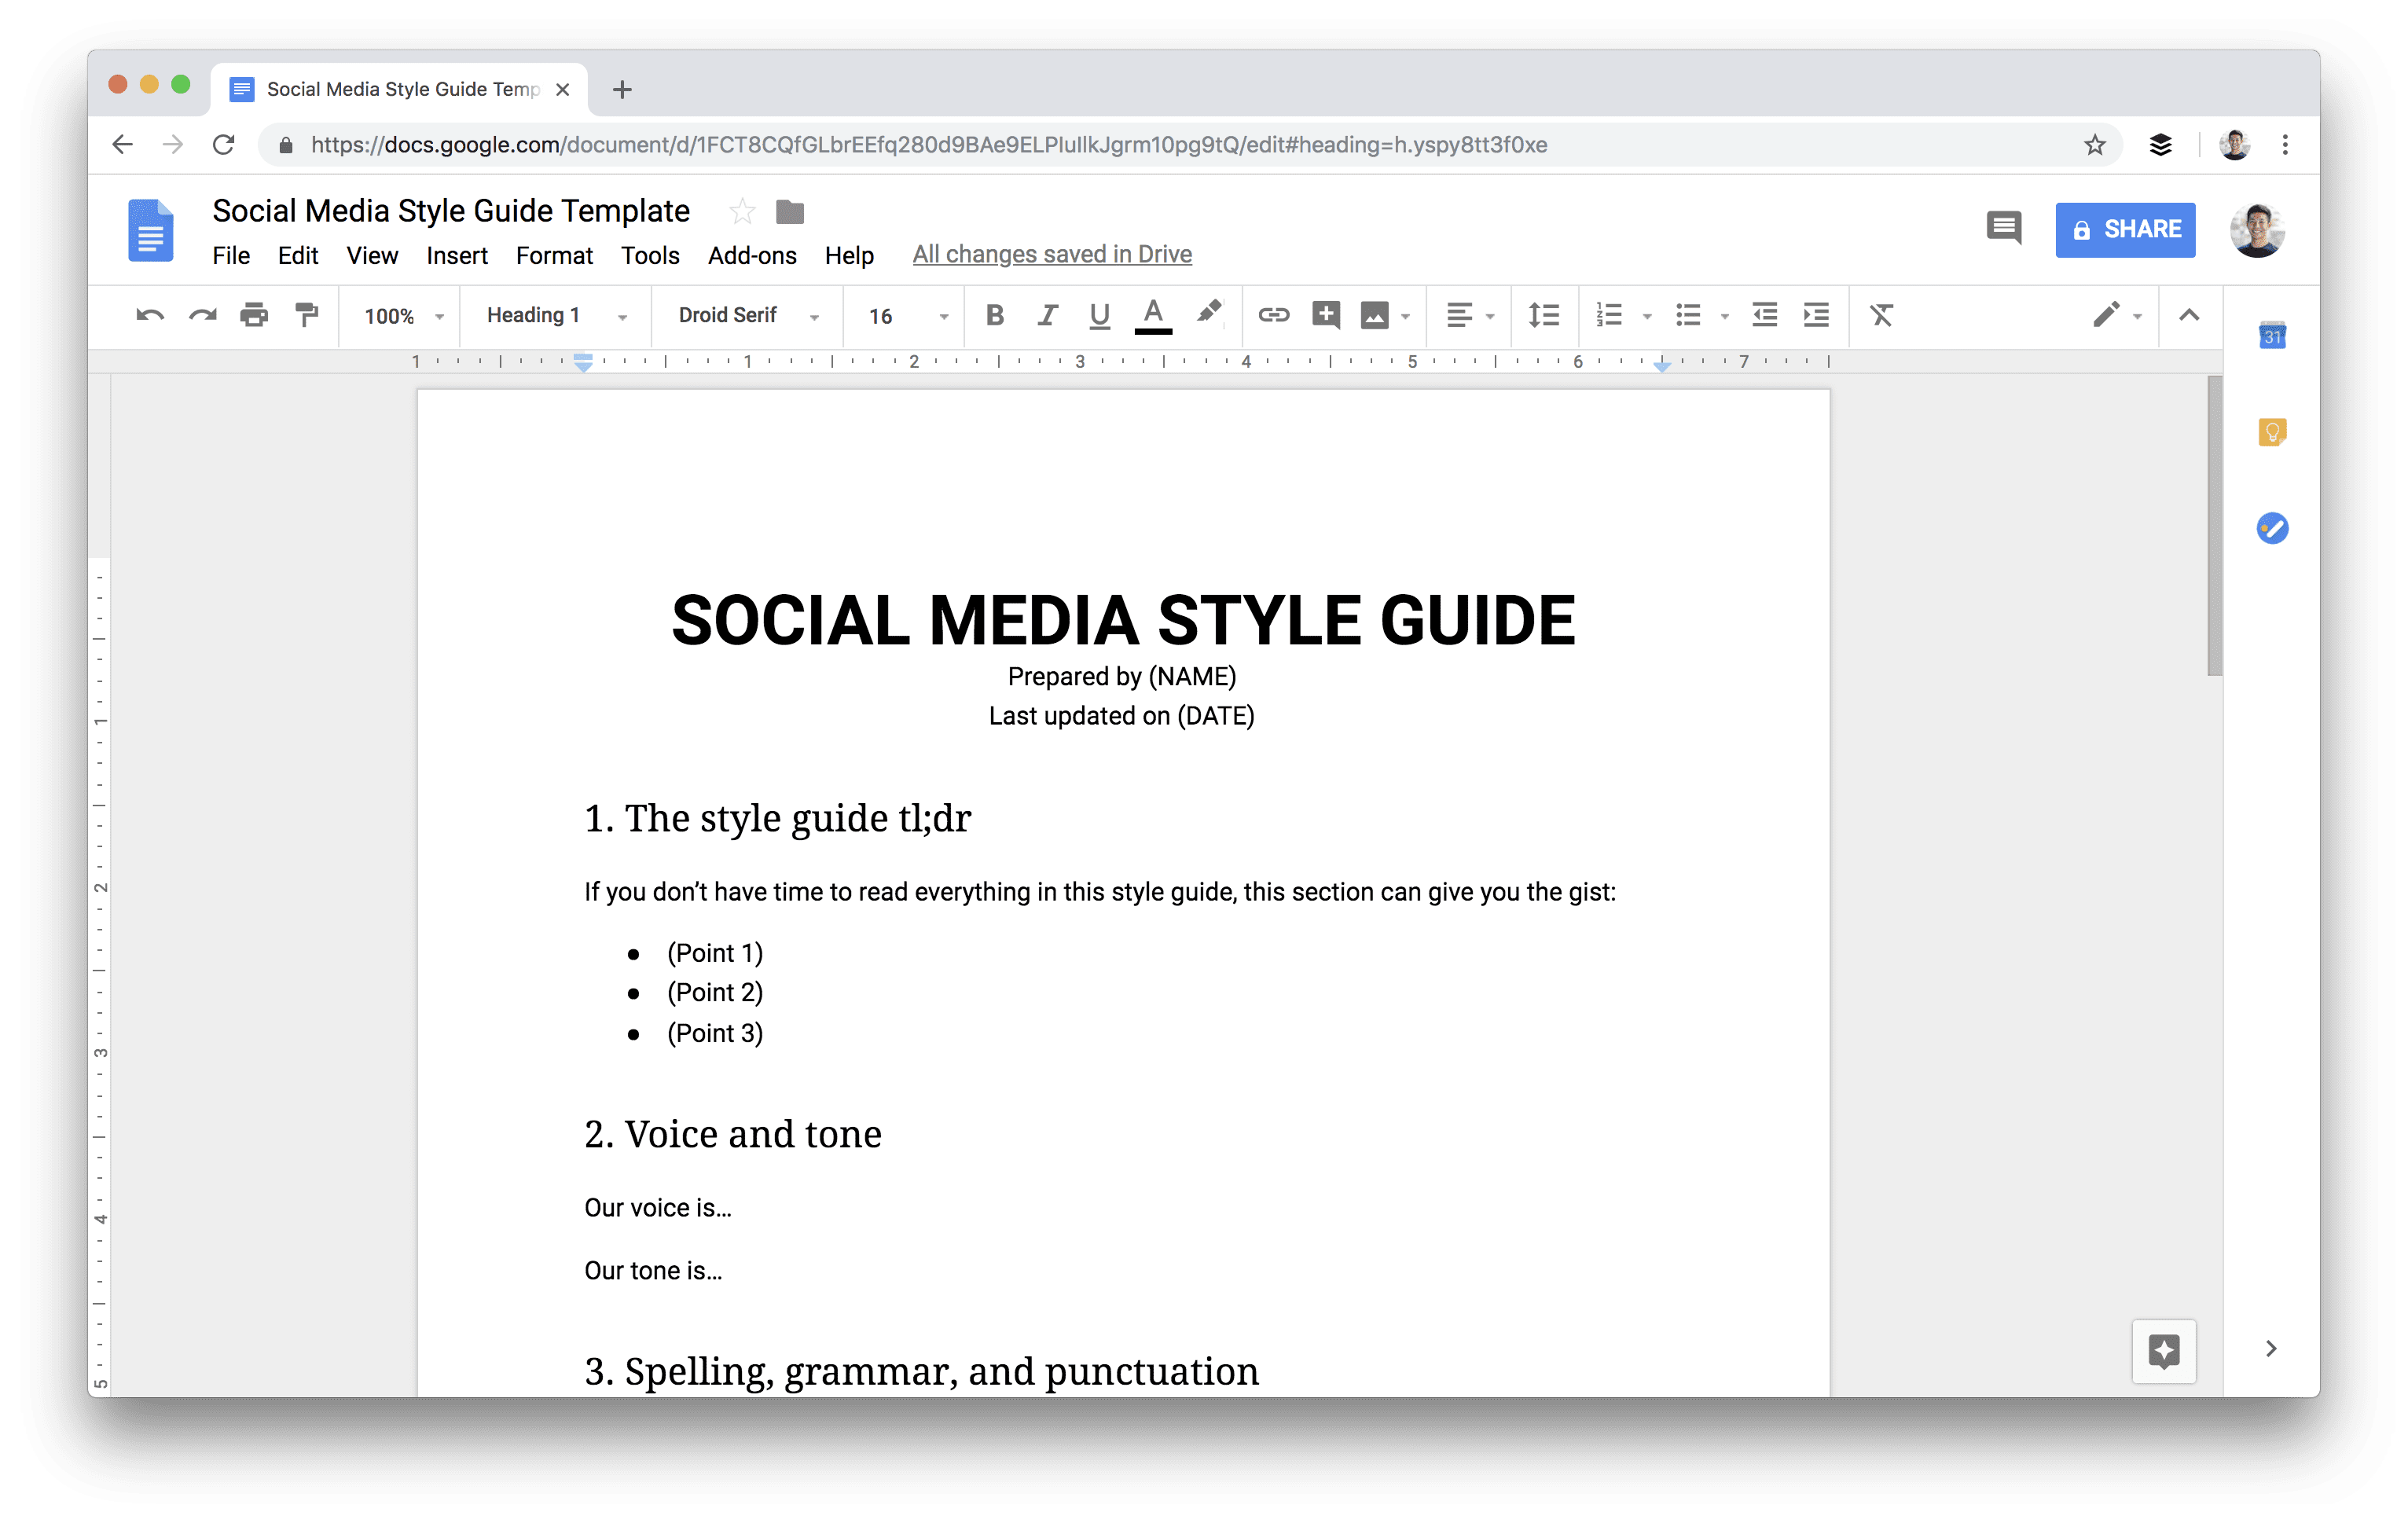 Social media style guide template